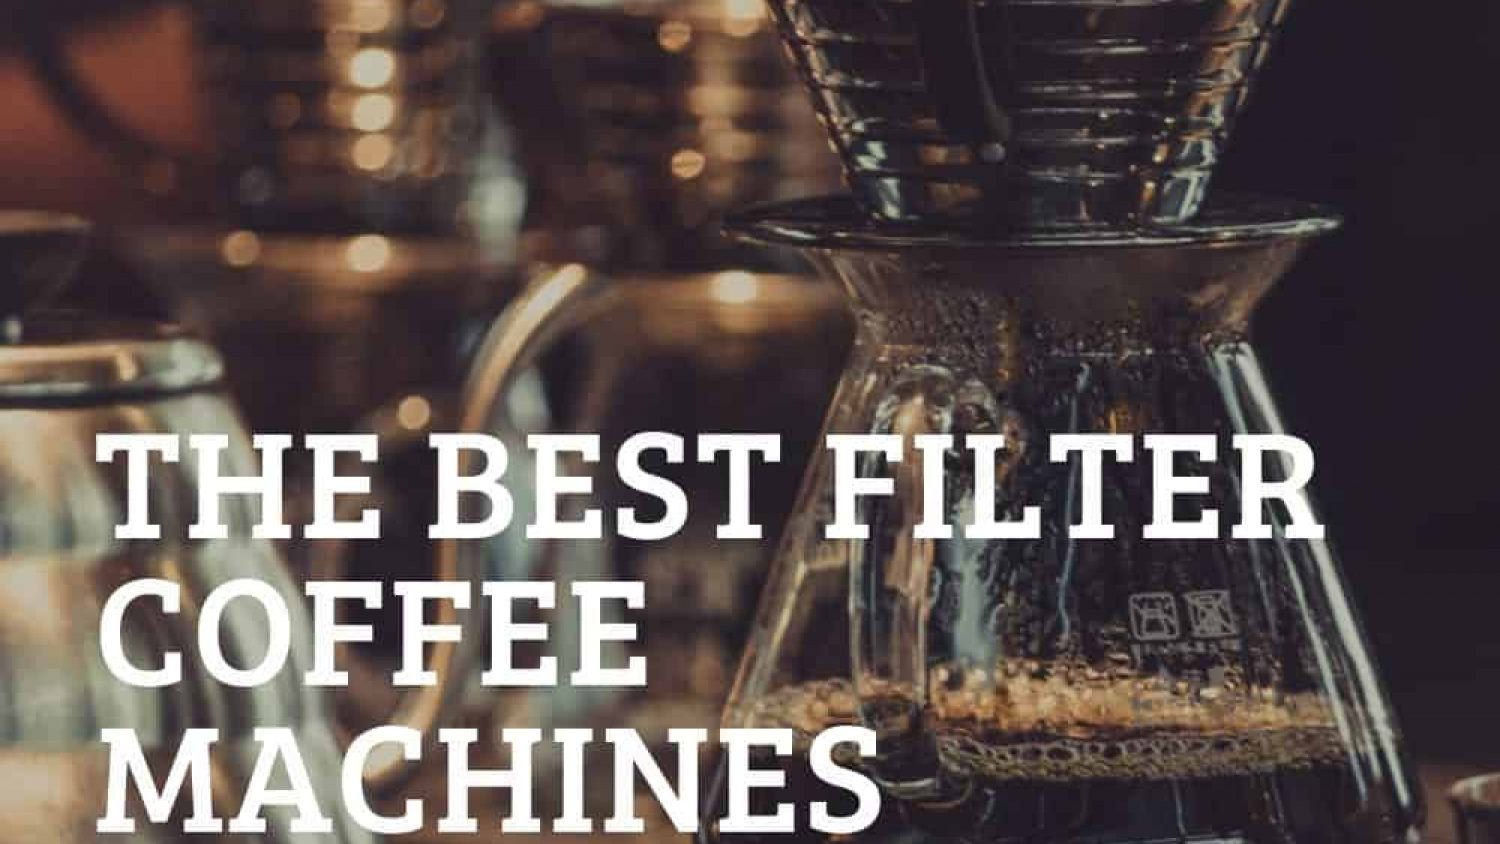 Best Filter Coffee Machines – Get Your Daily Coffee Fix